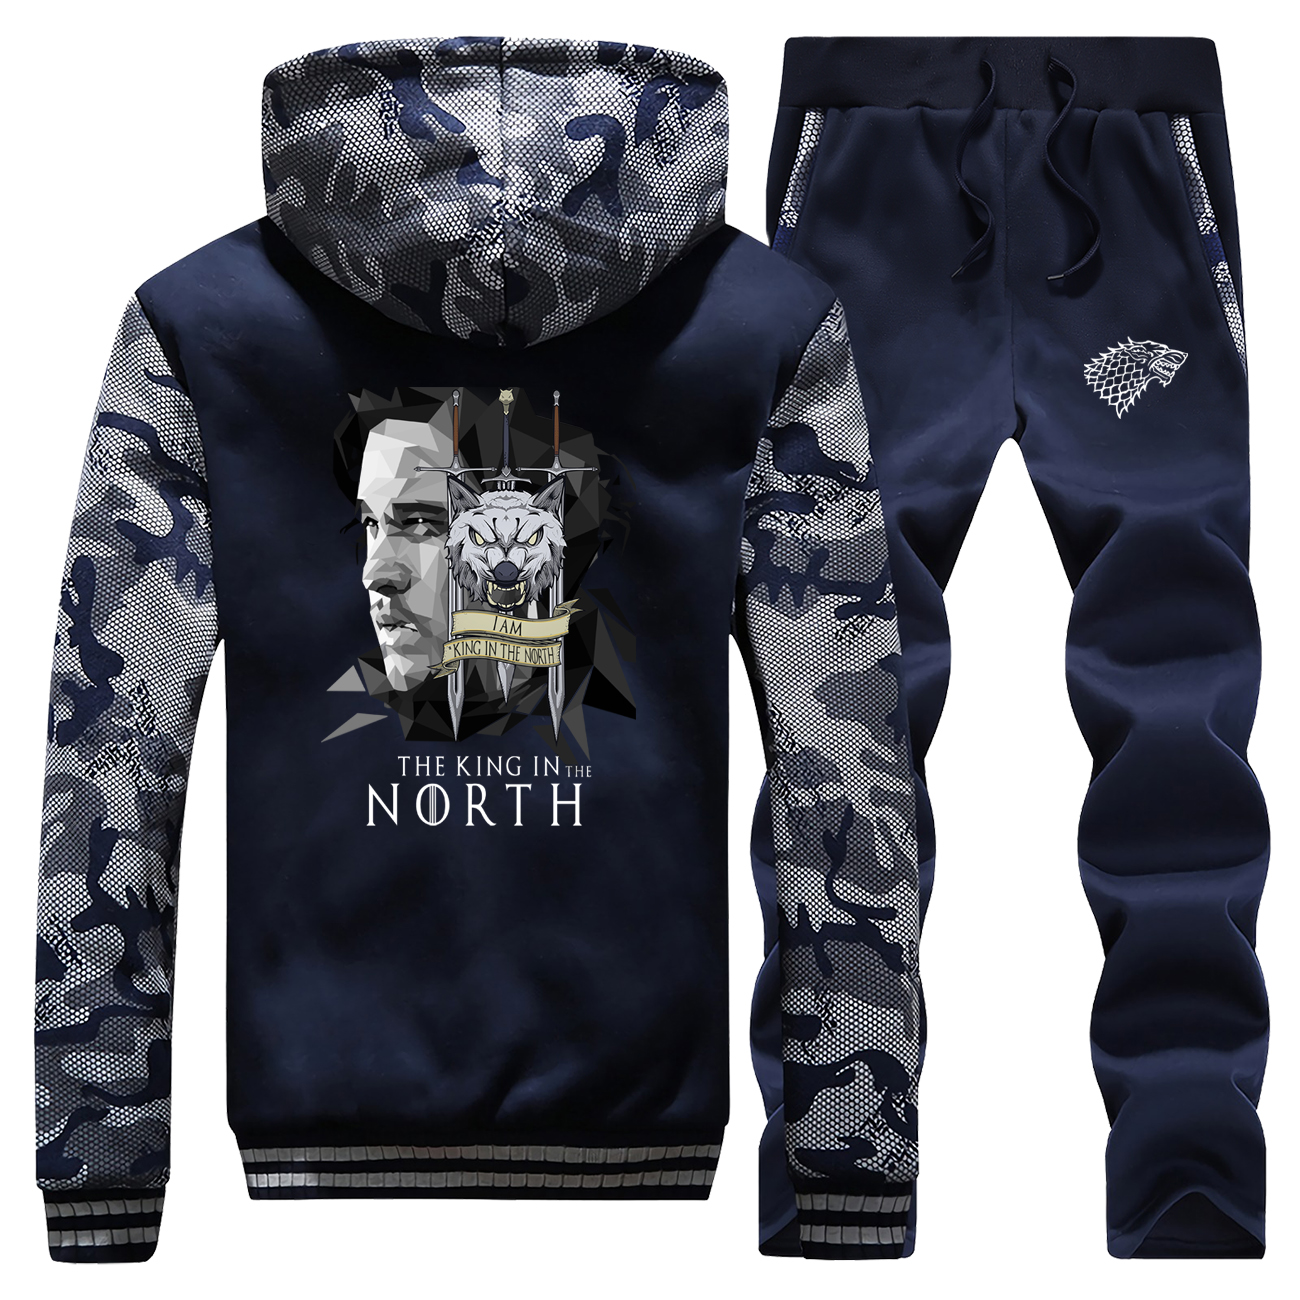 Hot Sale Winter Game Of Thrones King In The Orth Men Hoodies Camouflage Sportswear Coat Thick Suit Jacket+Sweatpants 2 Piece Set